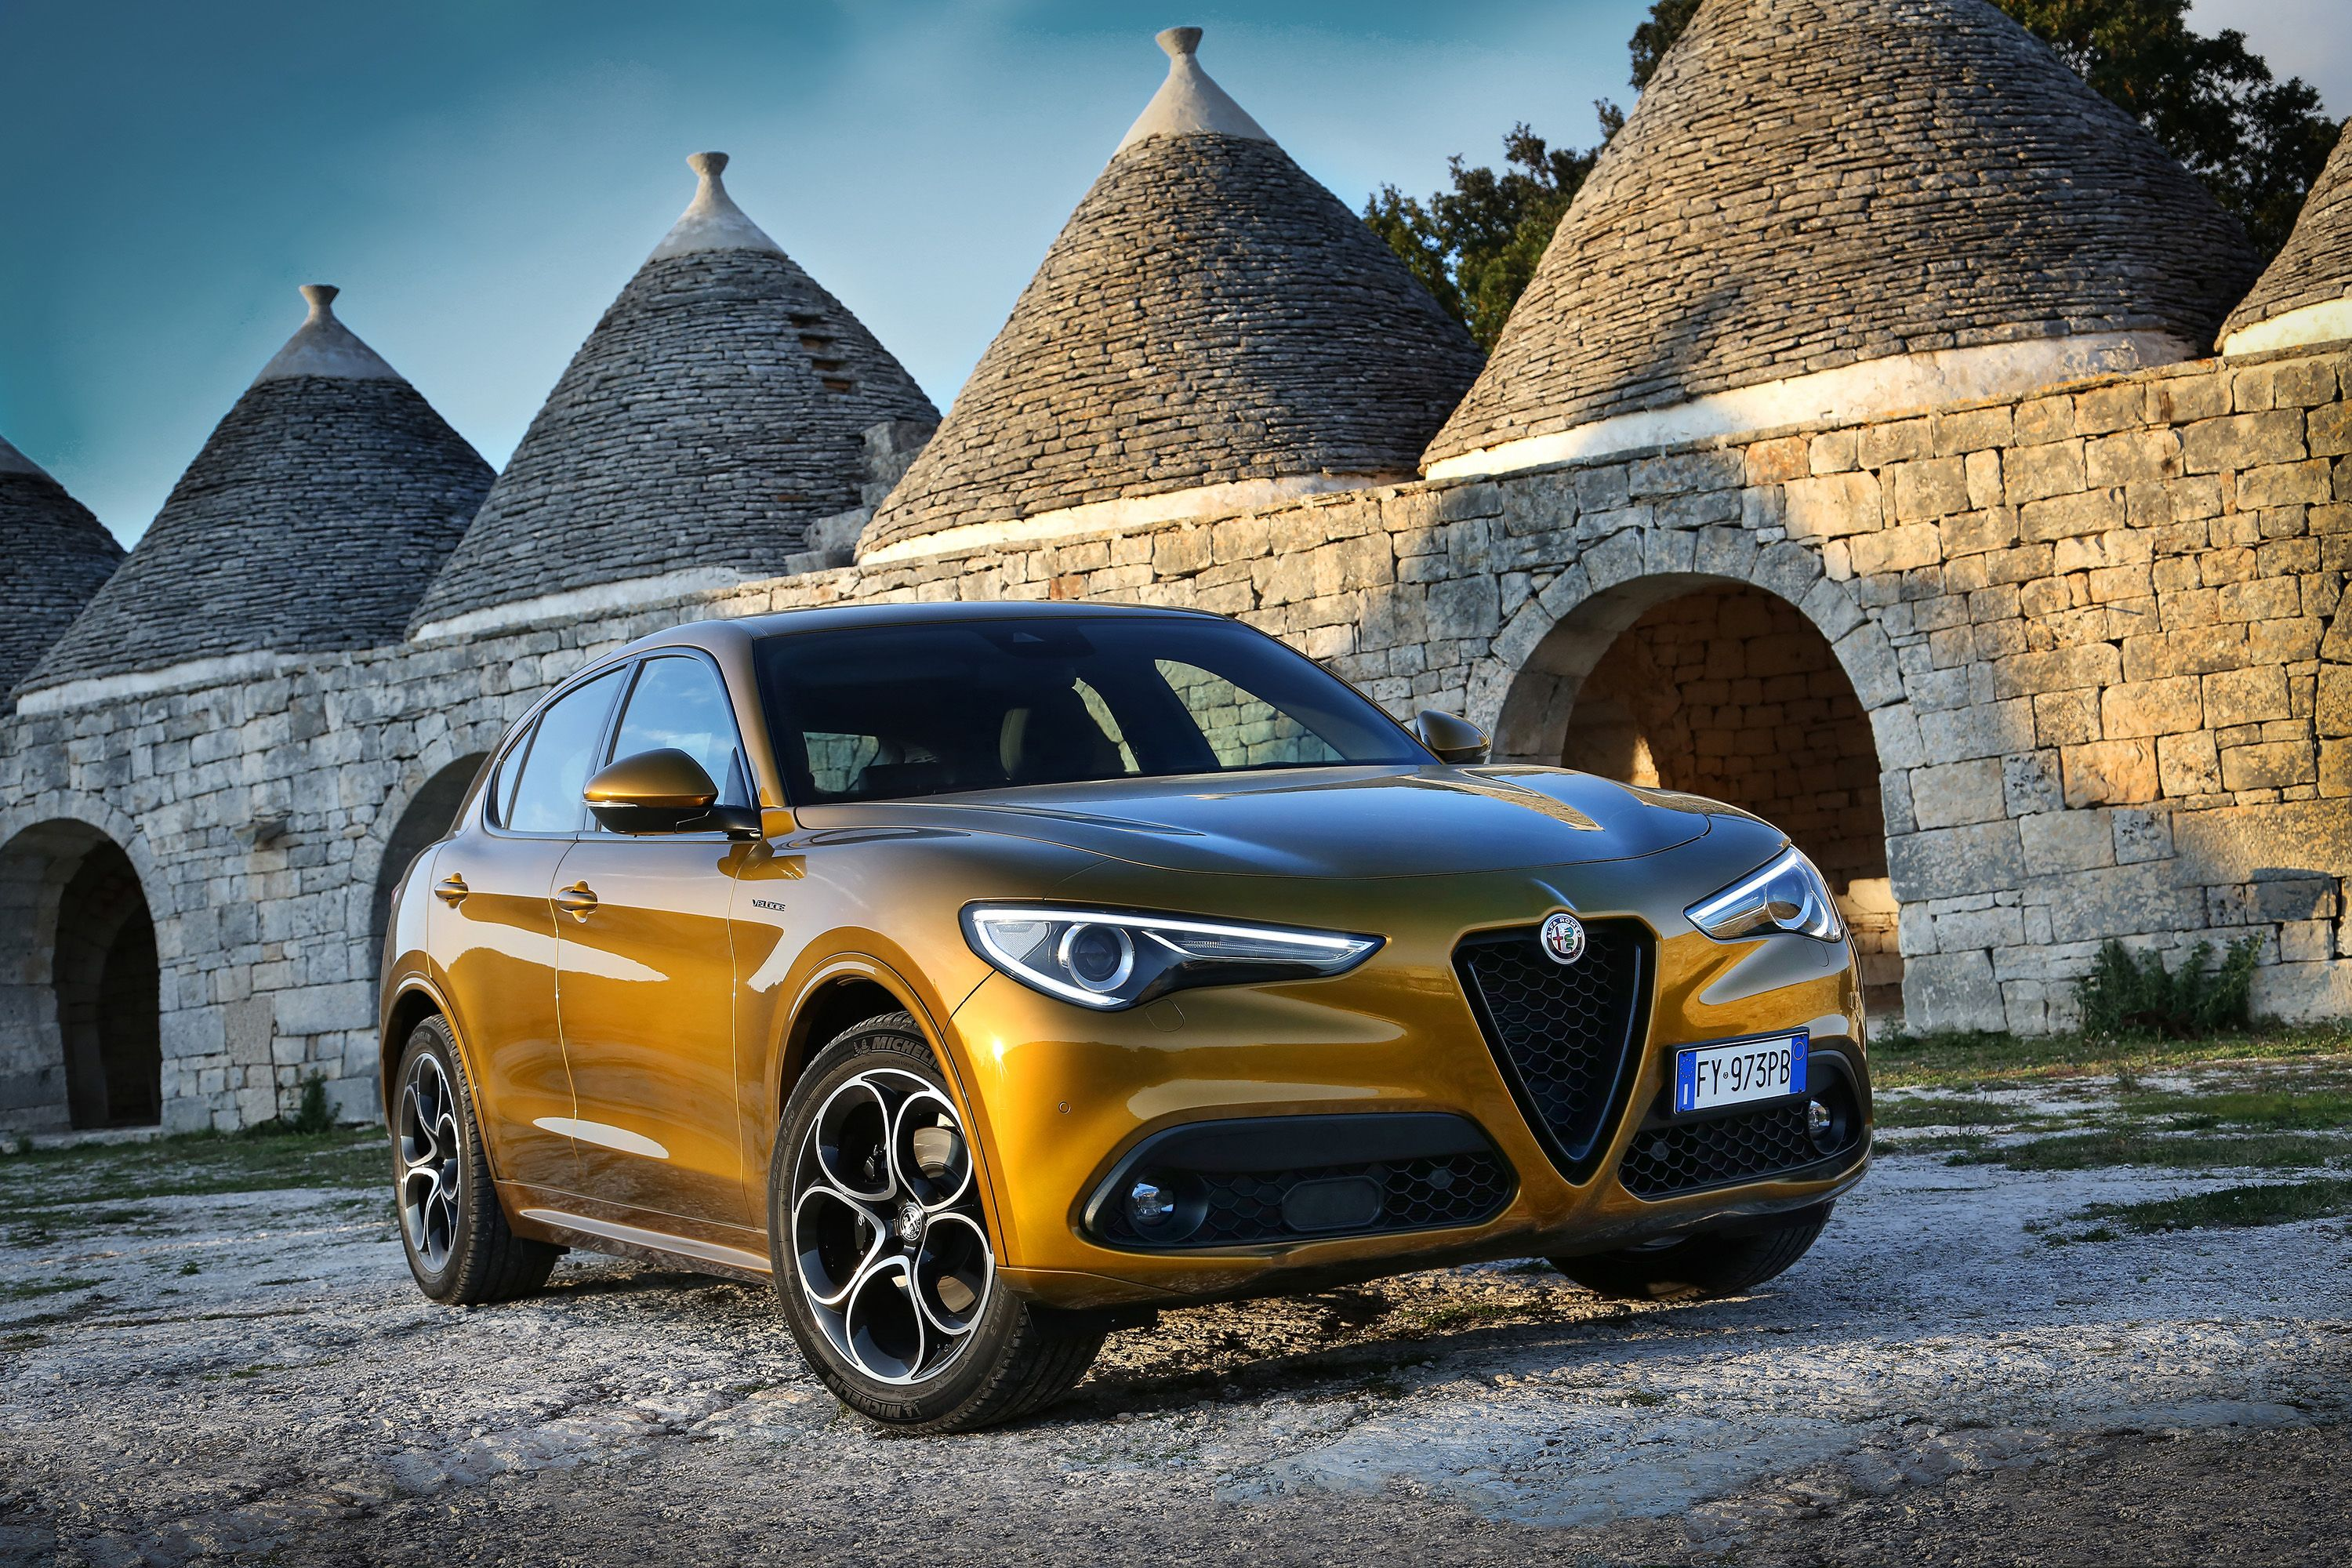 2020 Alfa Romeo Stelvio Review Pricing And Specs